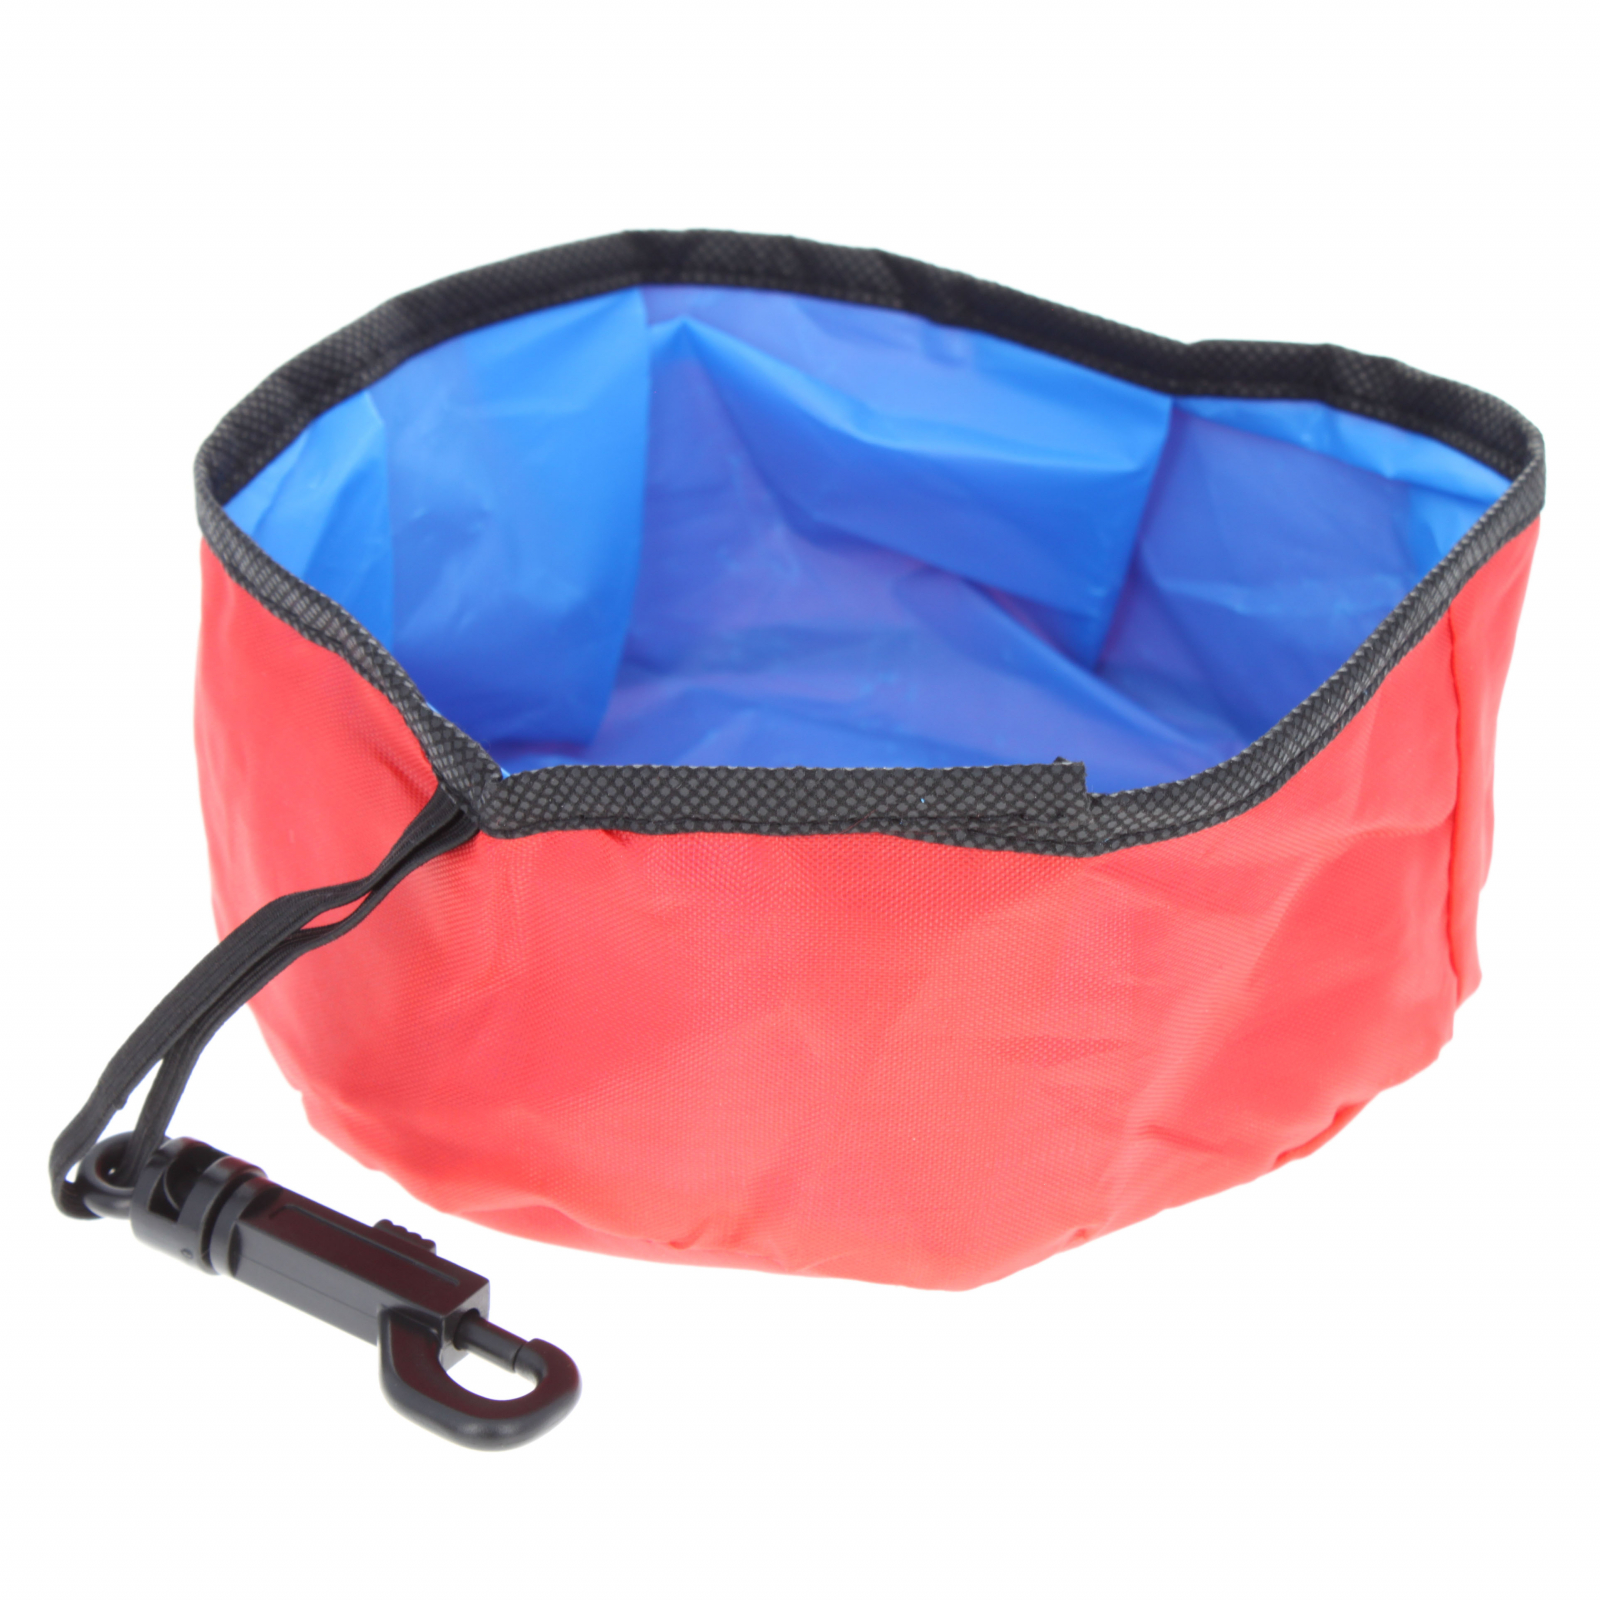 ASR Outdoor Folding Collapsible Waterproof Pet Travel Bowl